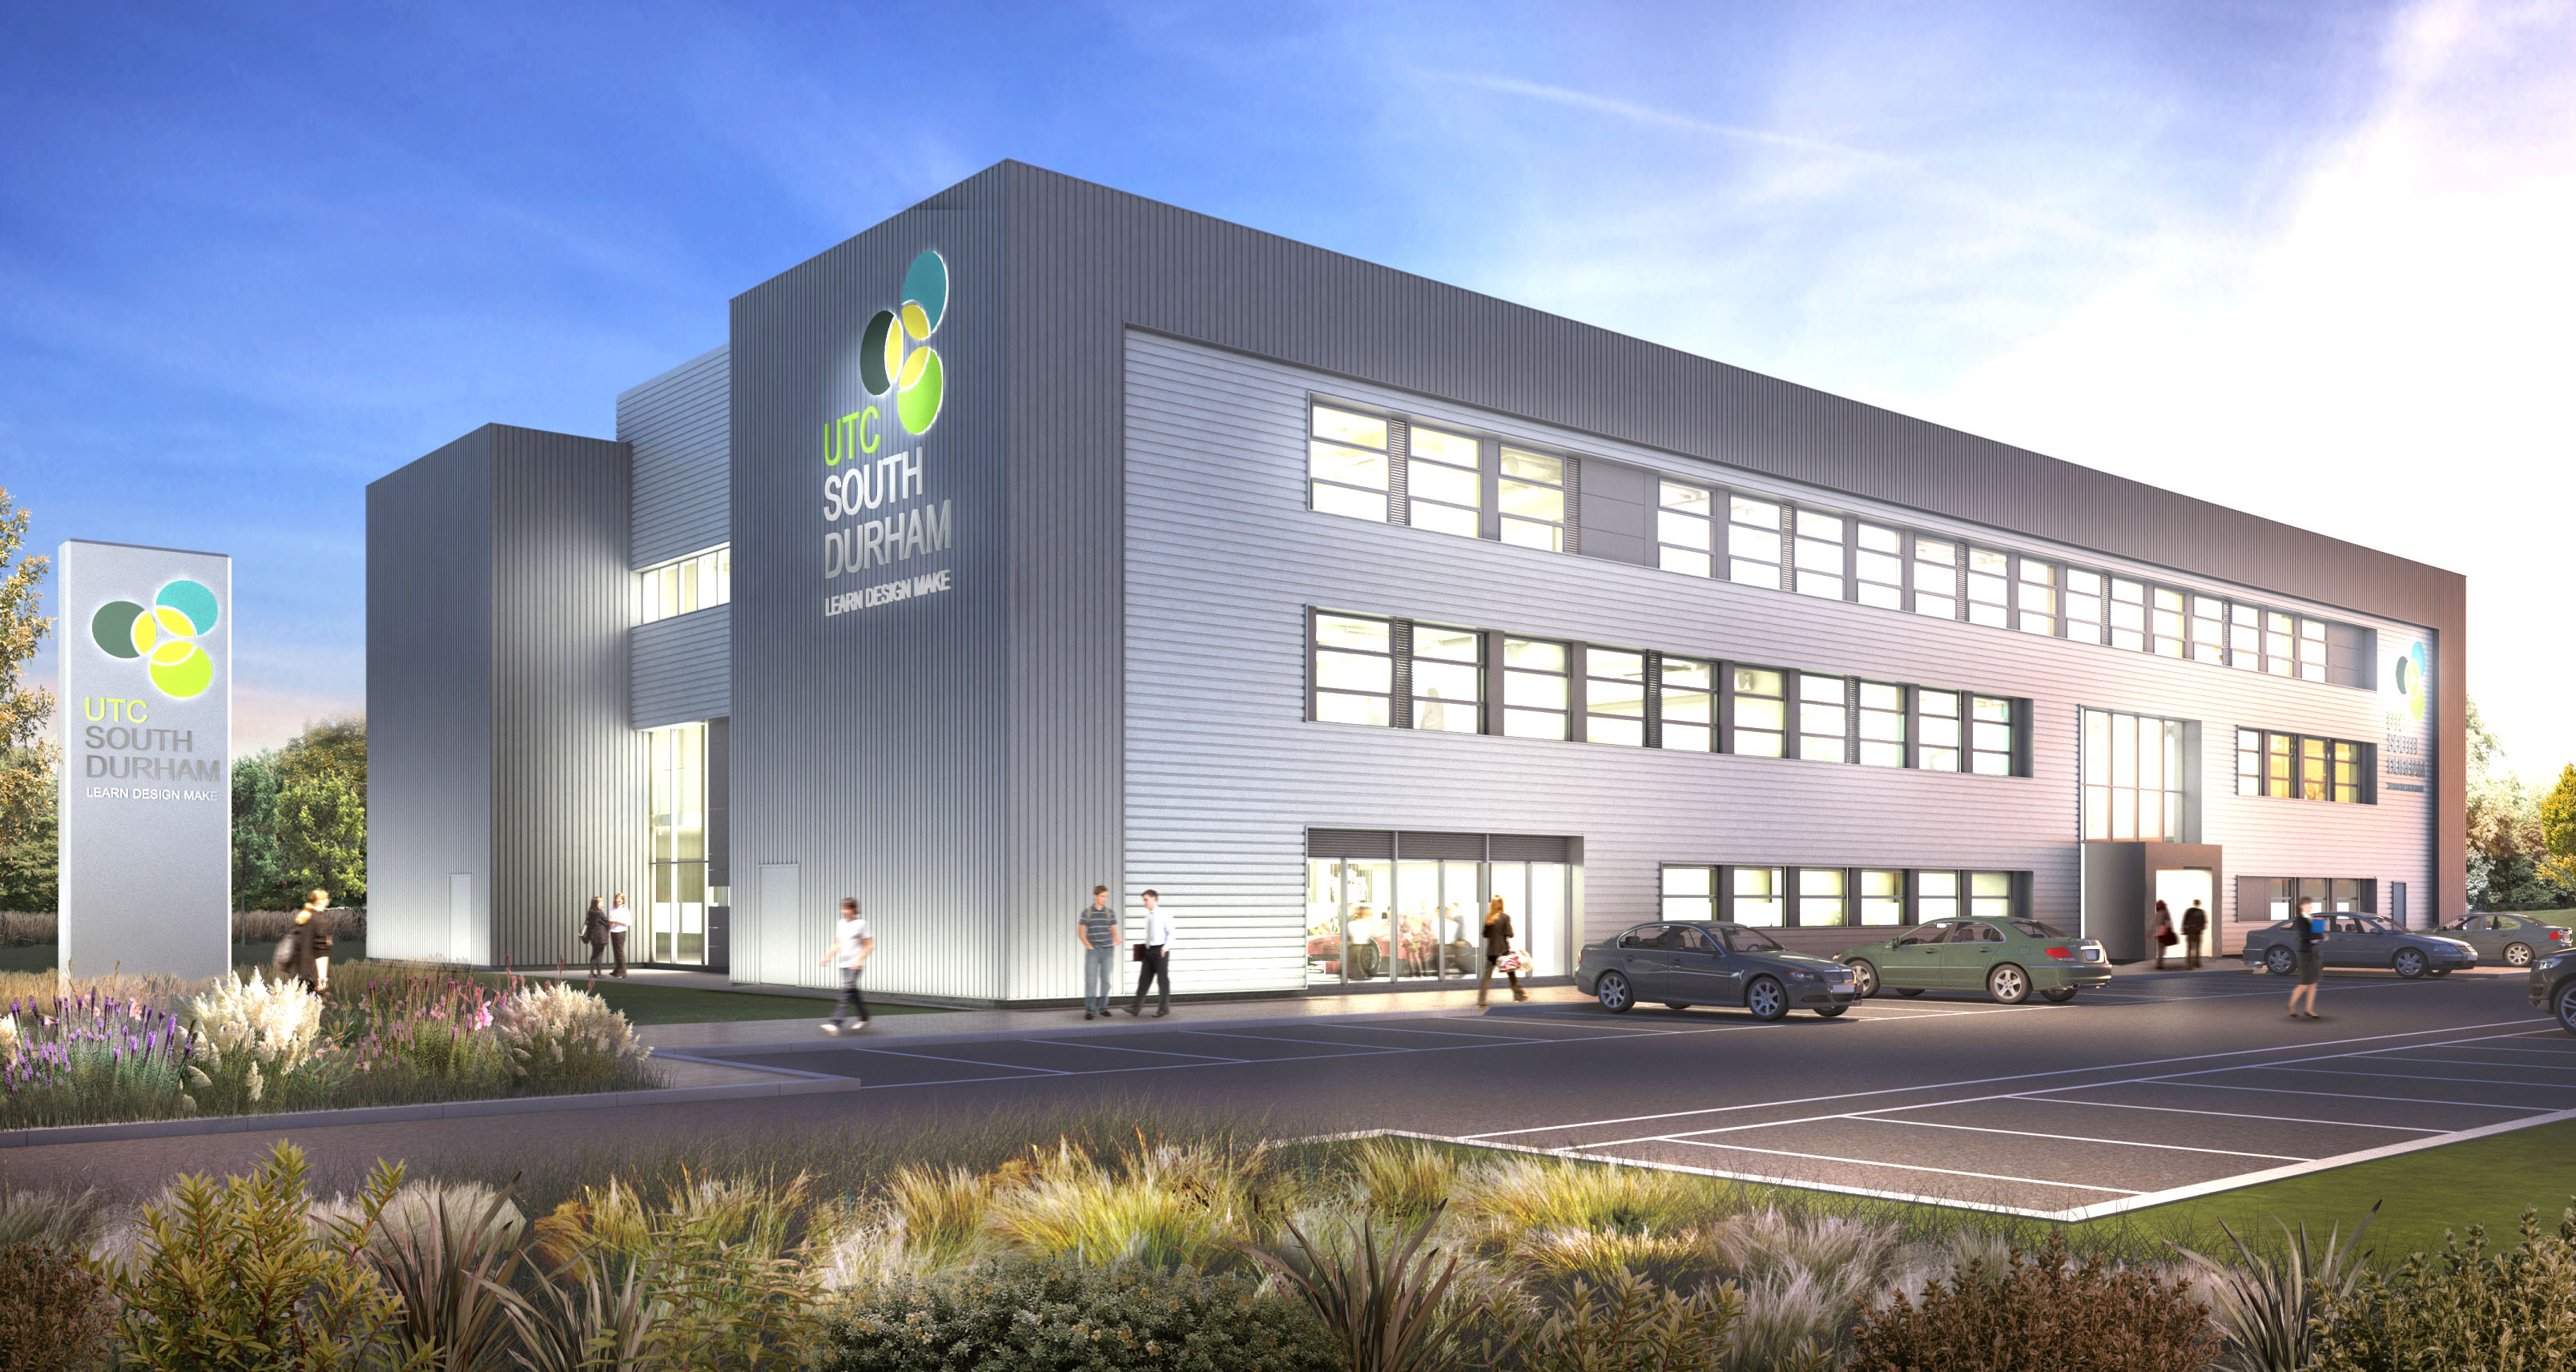 Aycliffe's New Technical College Opens in 2016